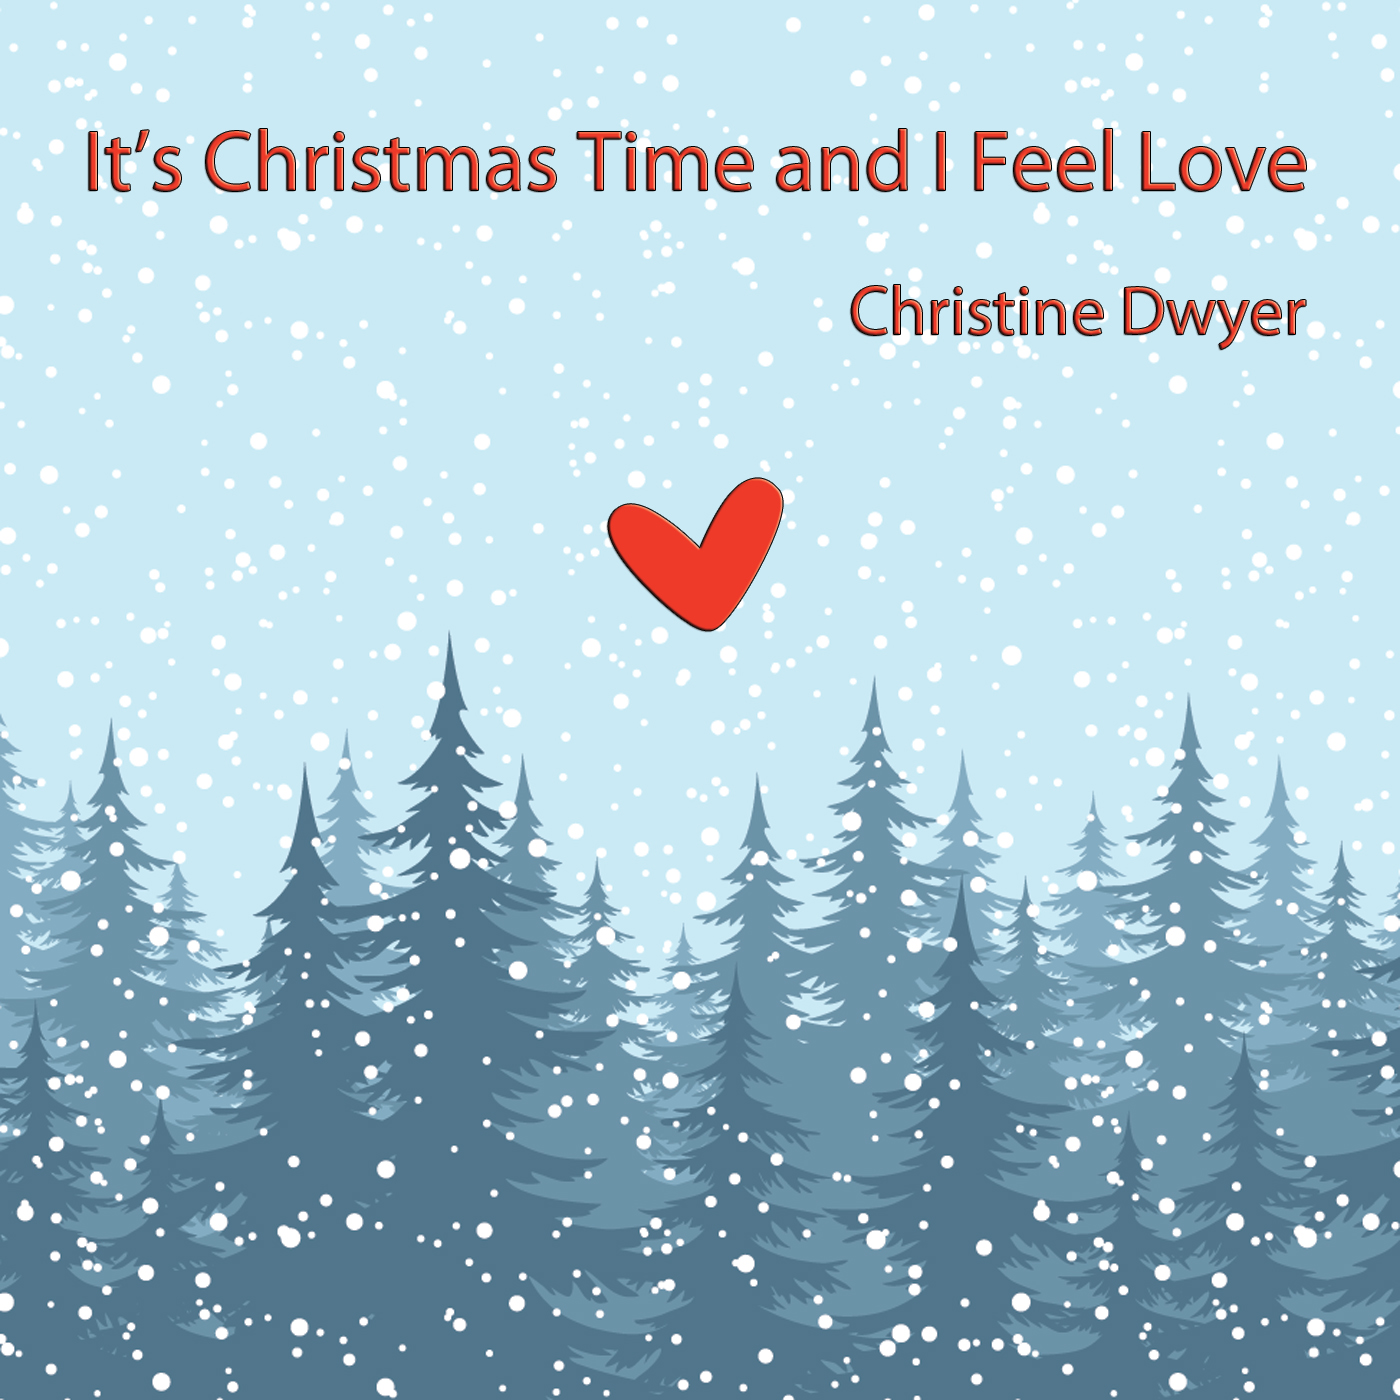 It's Christmas Time and I Feel Love_Christine Dwyer